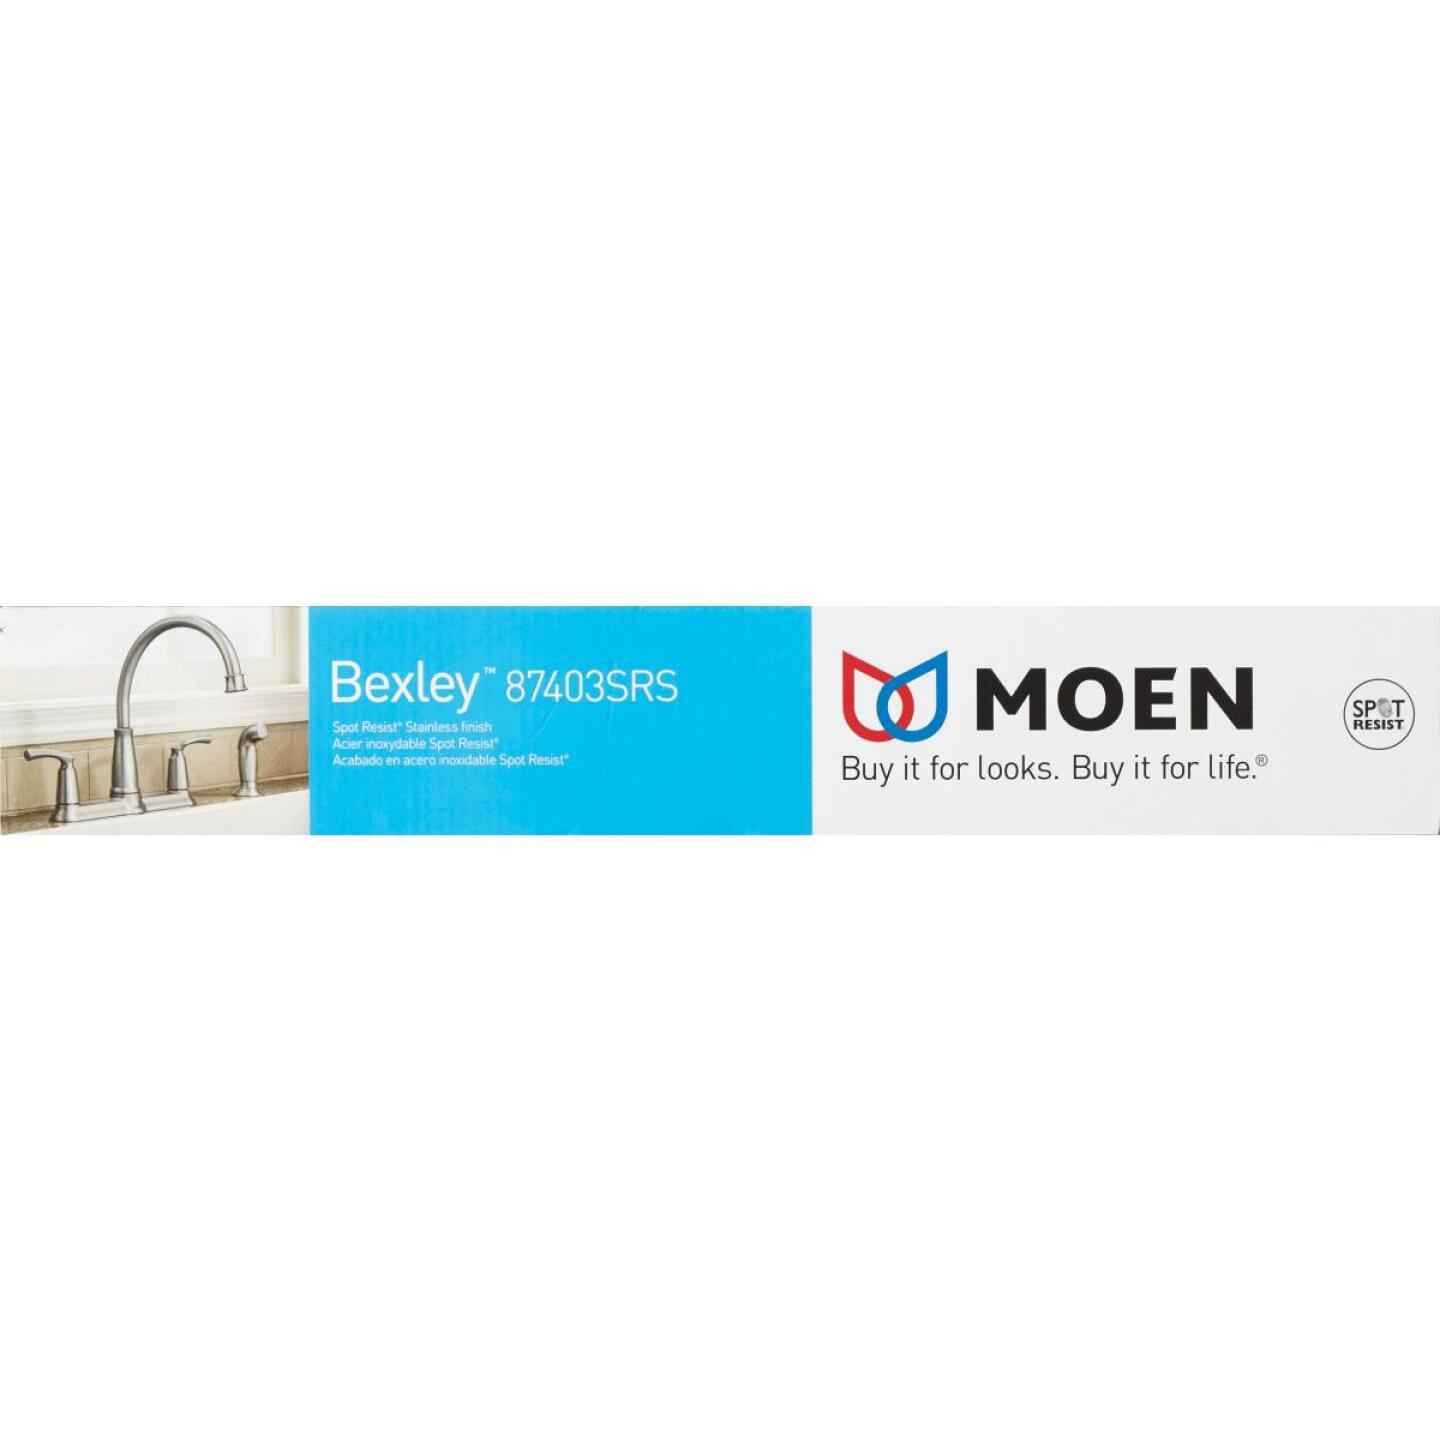 Moen Bexley Dual Handle Lever Kitchen Faucet with Side Spray, Stainless Image 2